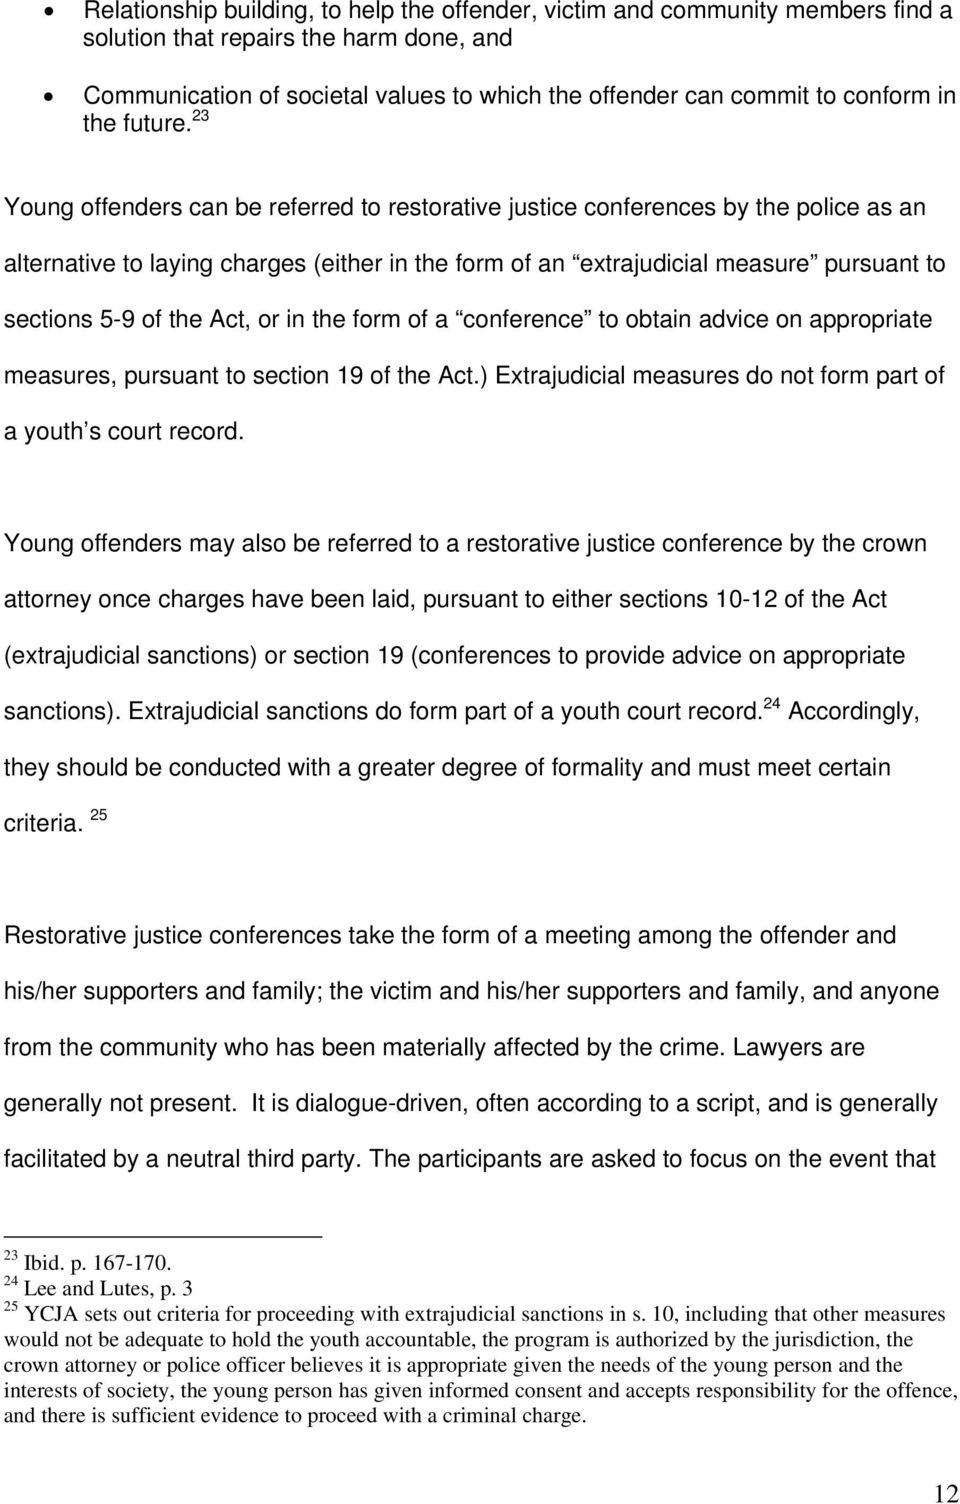 23 Young offenders can be referred to restorative justice conferences by the police as an alternative to laying charges (either in the form of an extrajudicial measure pursuant to sections 5-9 of the